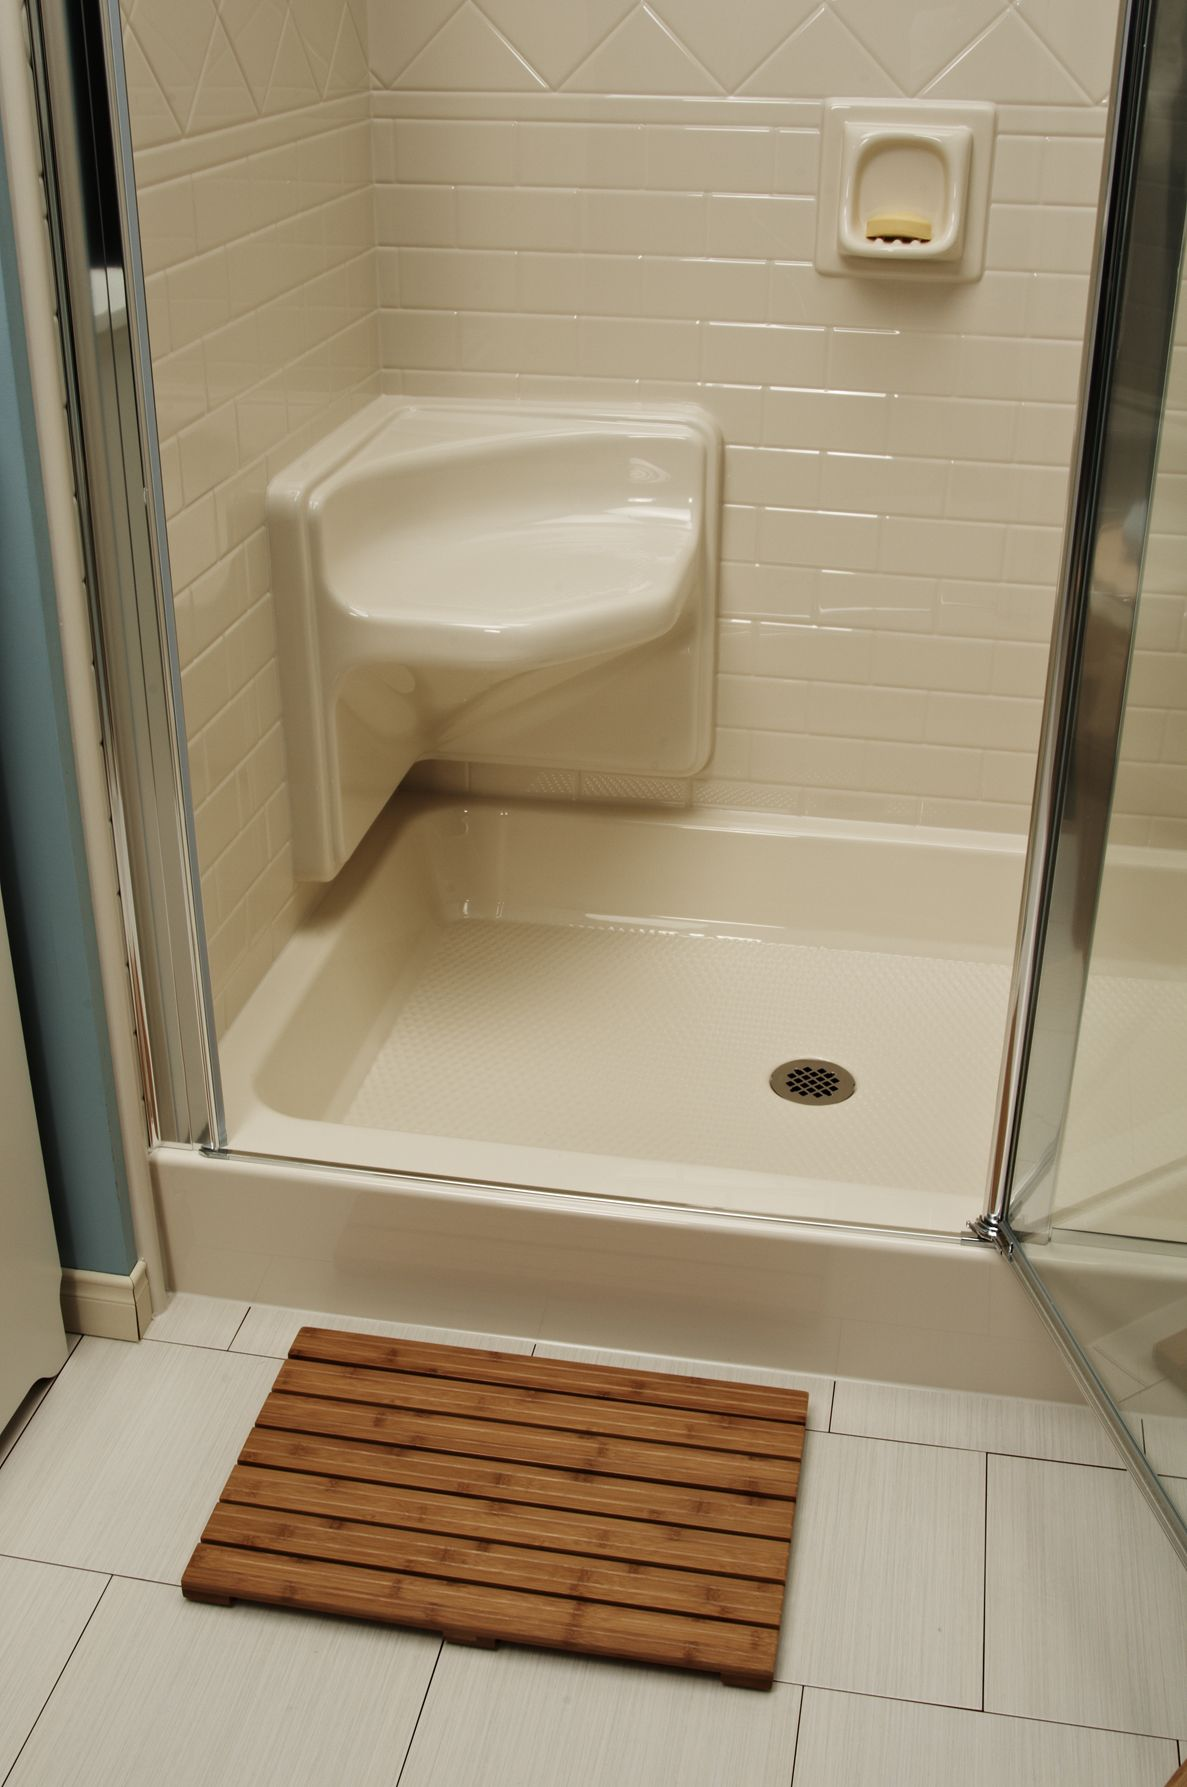 Bath Fitters Showers Part - 21: Bath Fitter Can Install A Built-in Shower Seat.